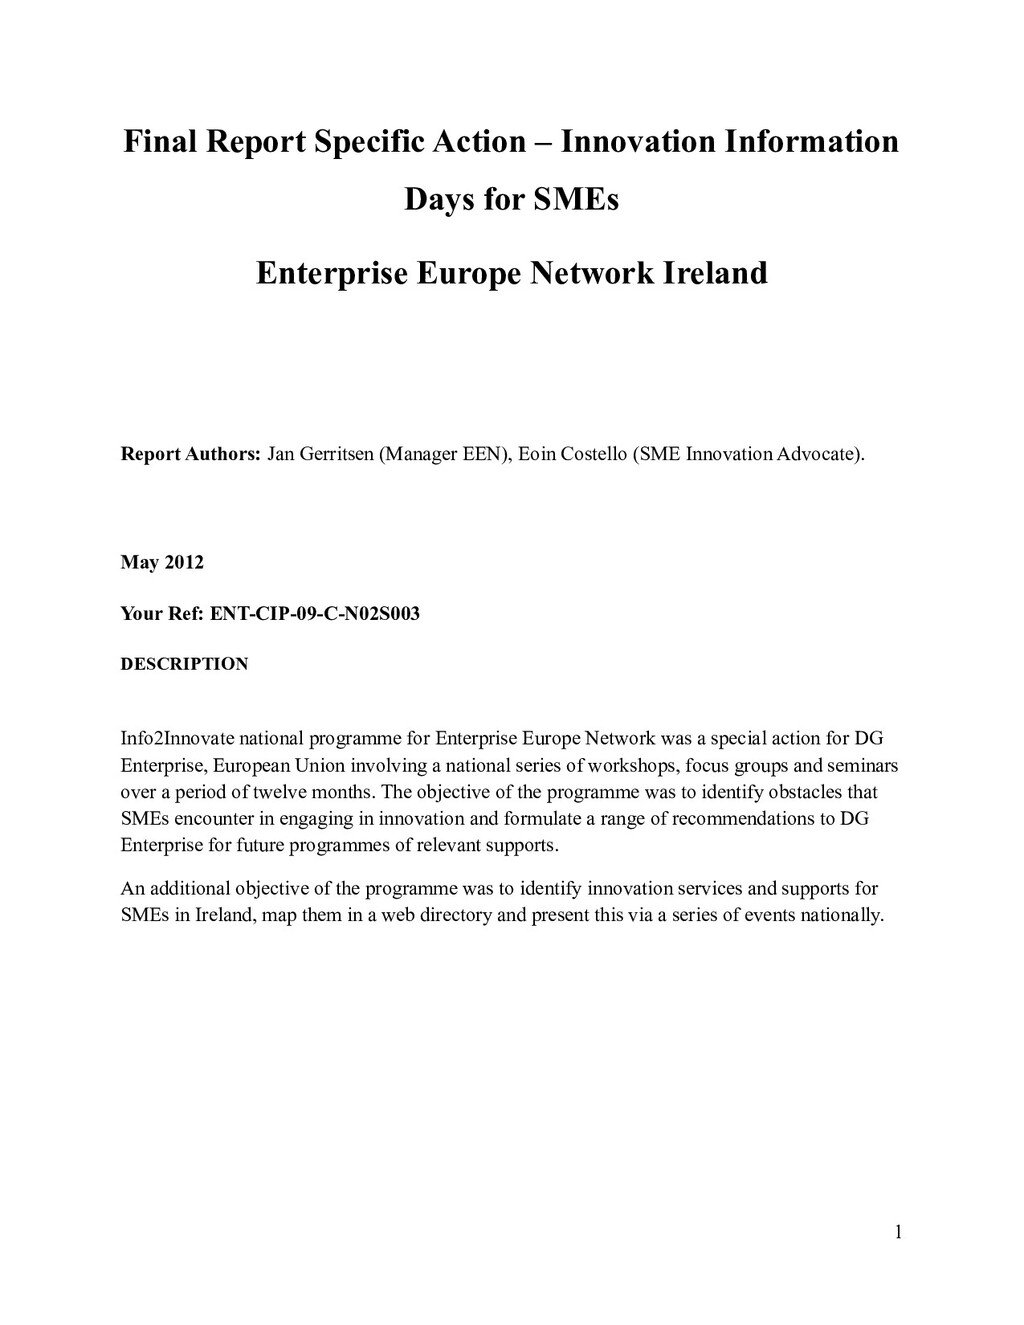 Final Report Specific Action – Innovation Infor...